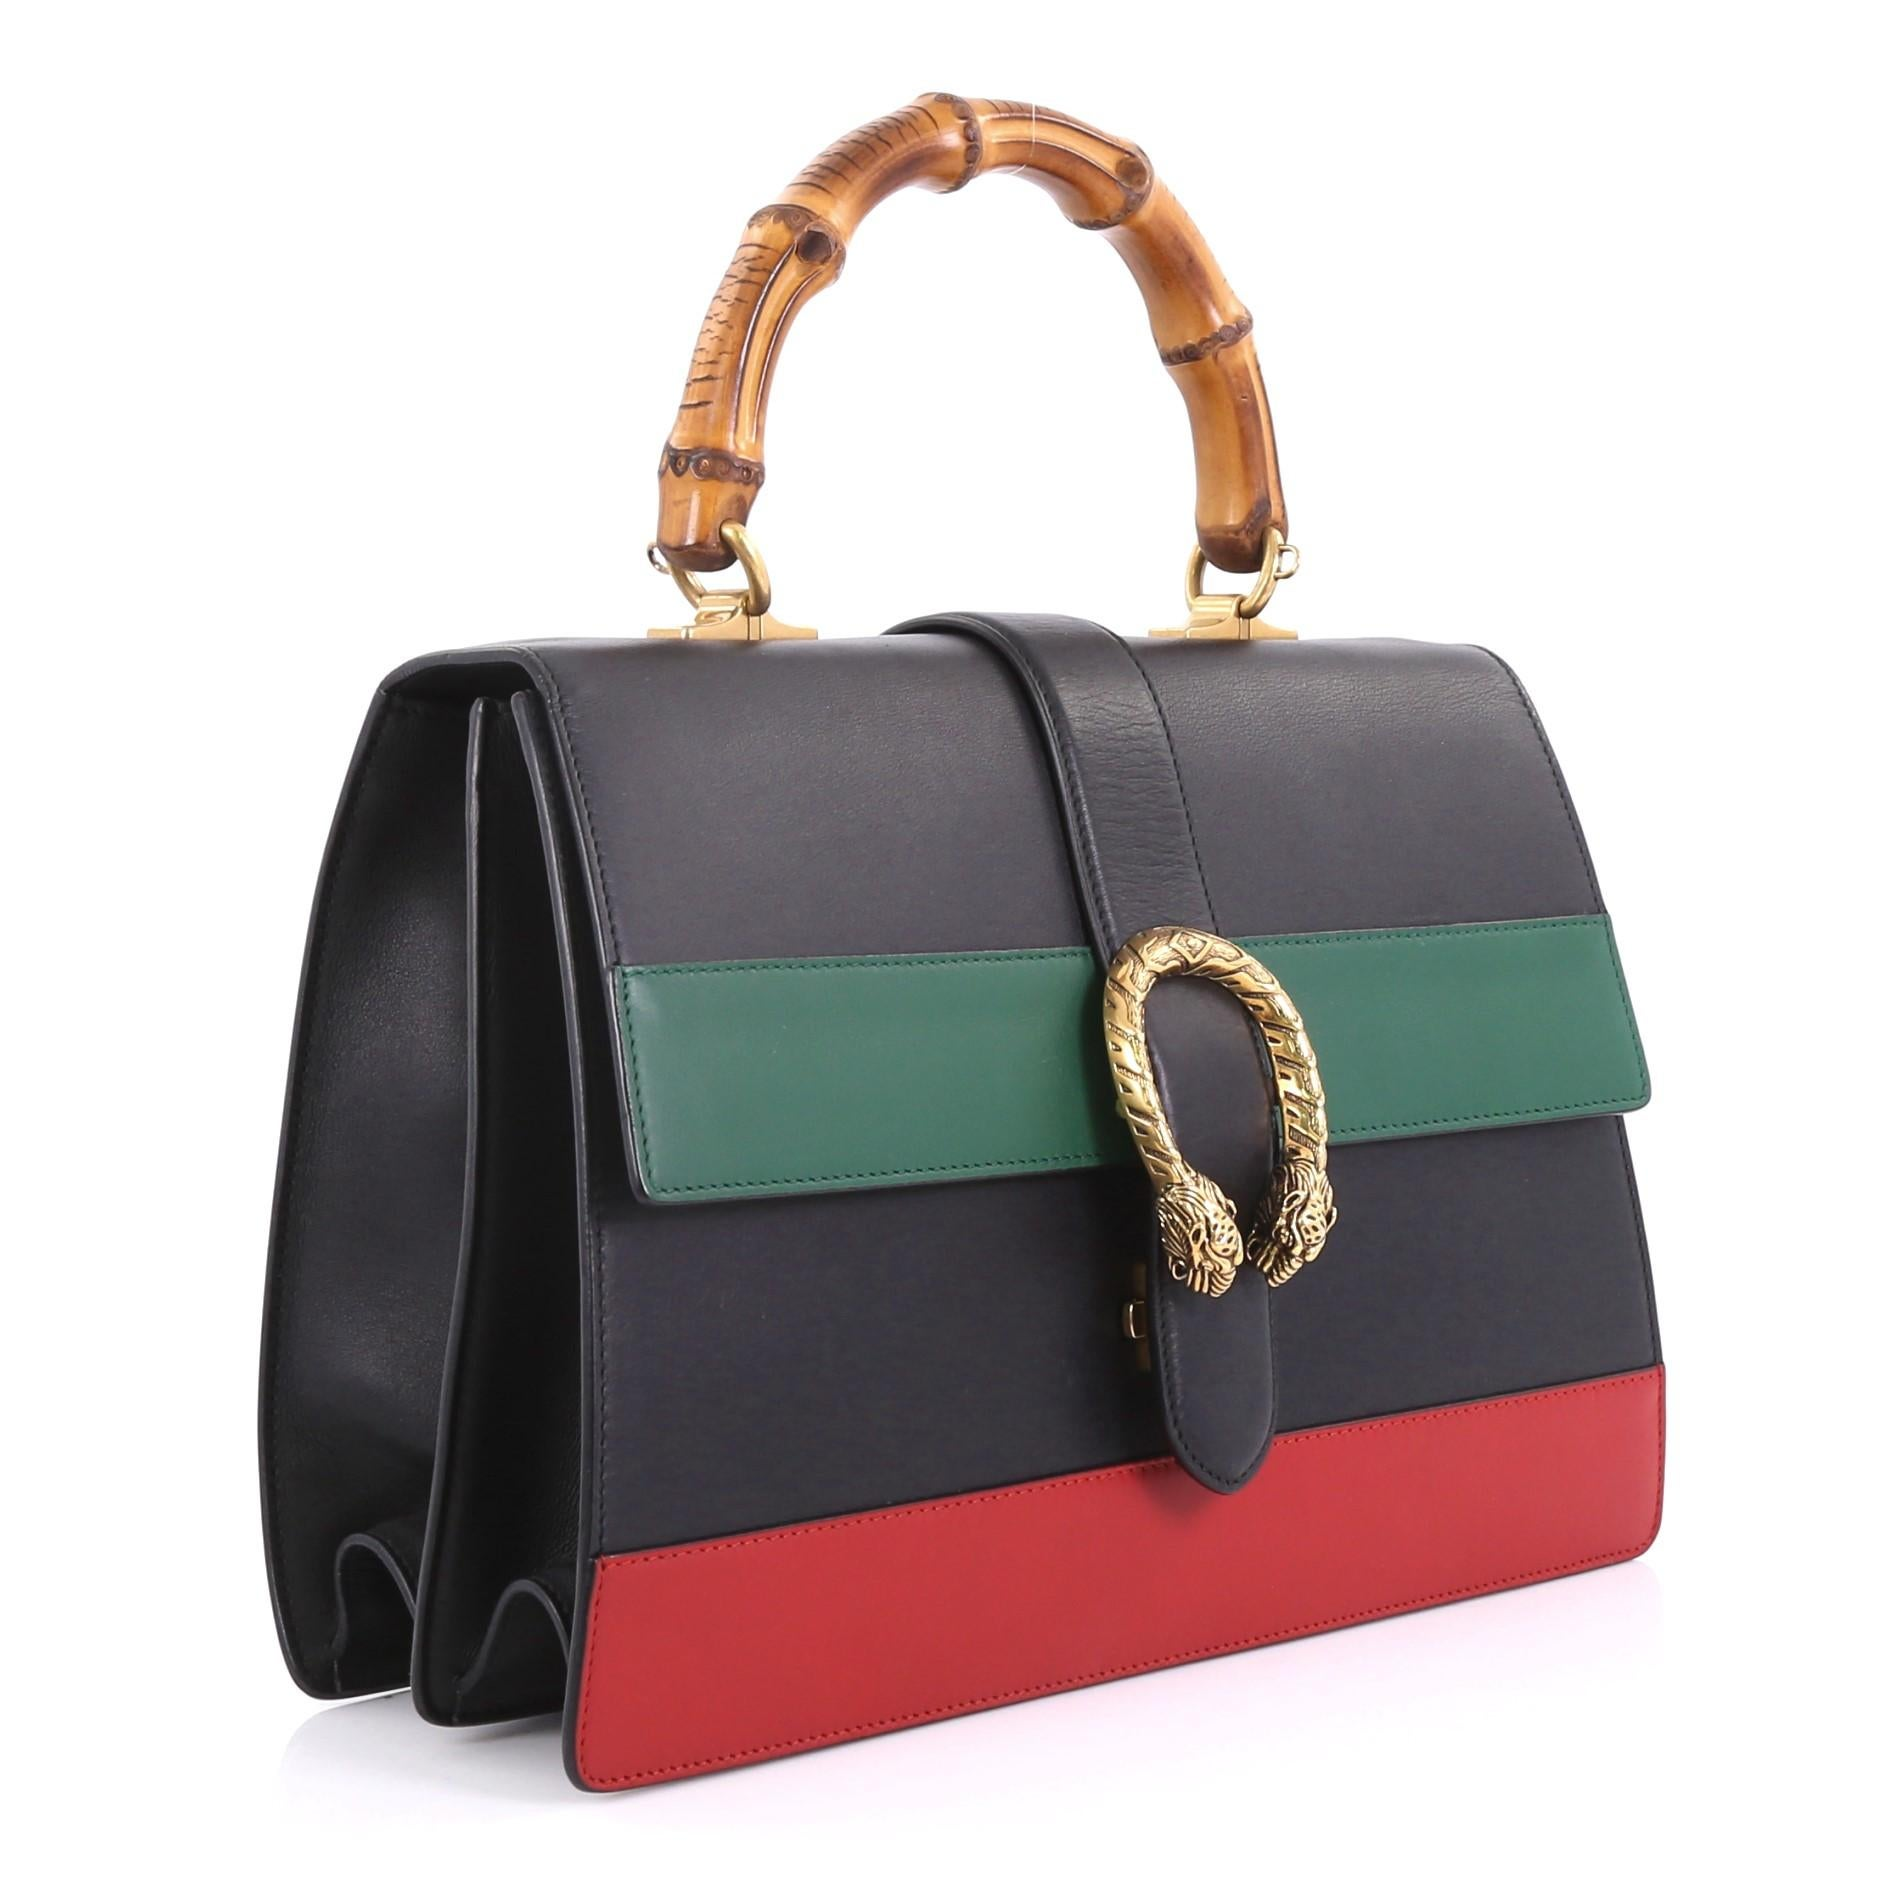 3462fbee93c6 Gucci Dionysus Bamboo Top Handle Bag Colorblock Leather Large For Sale at  1stdibs